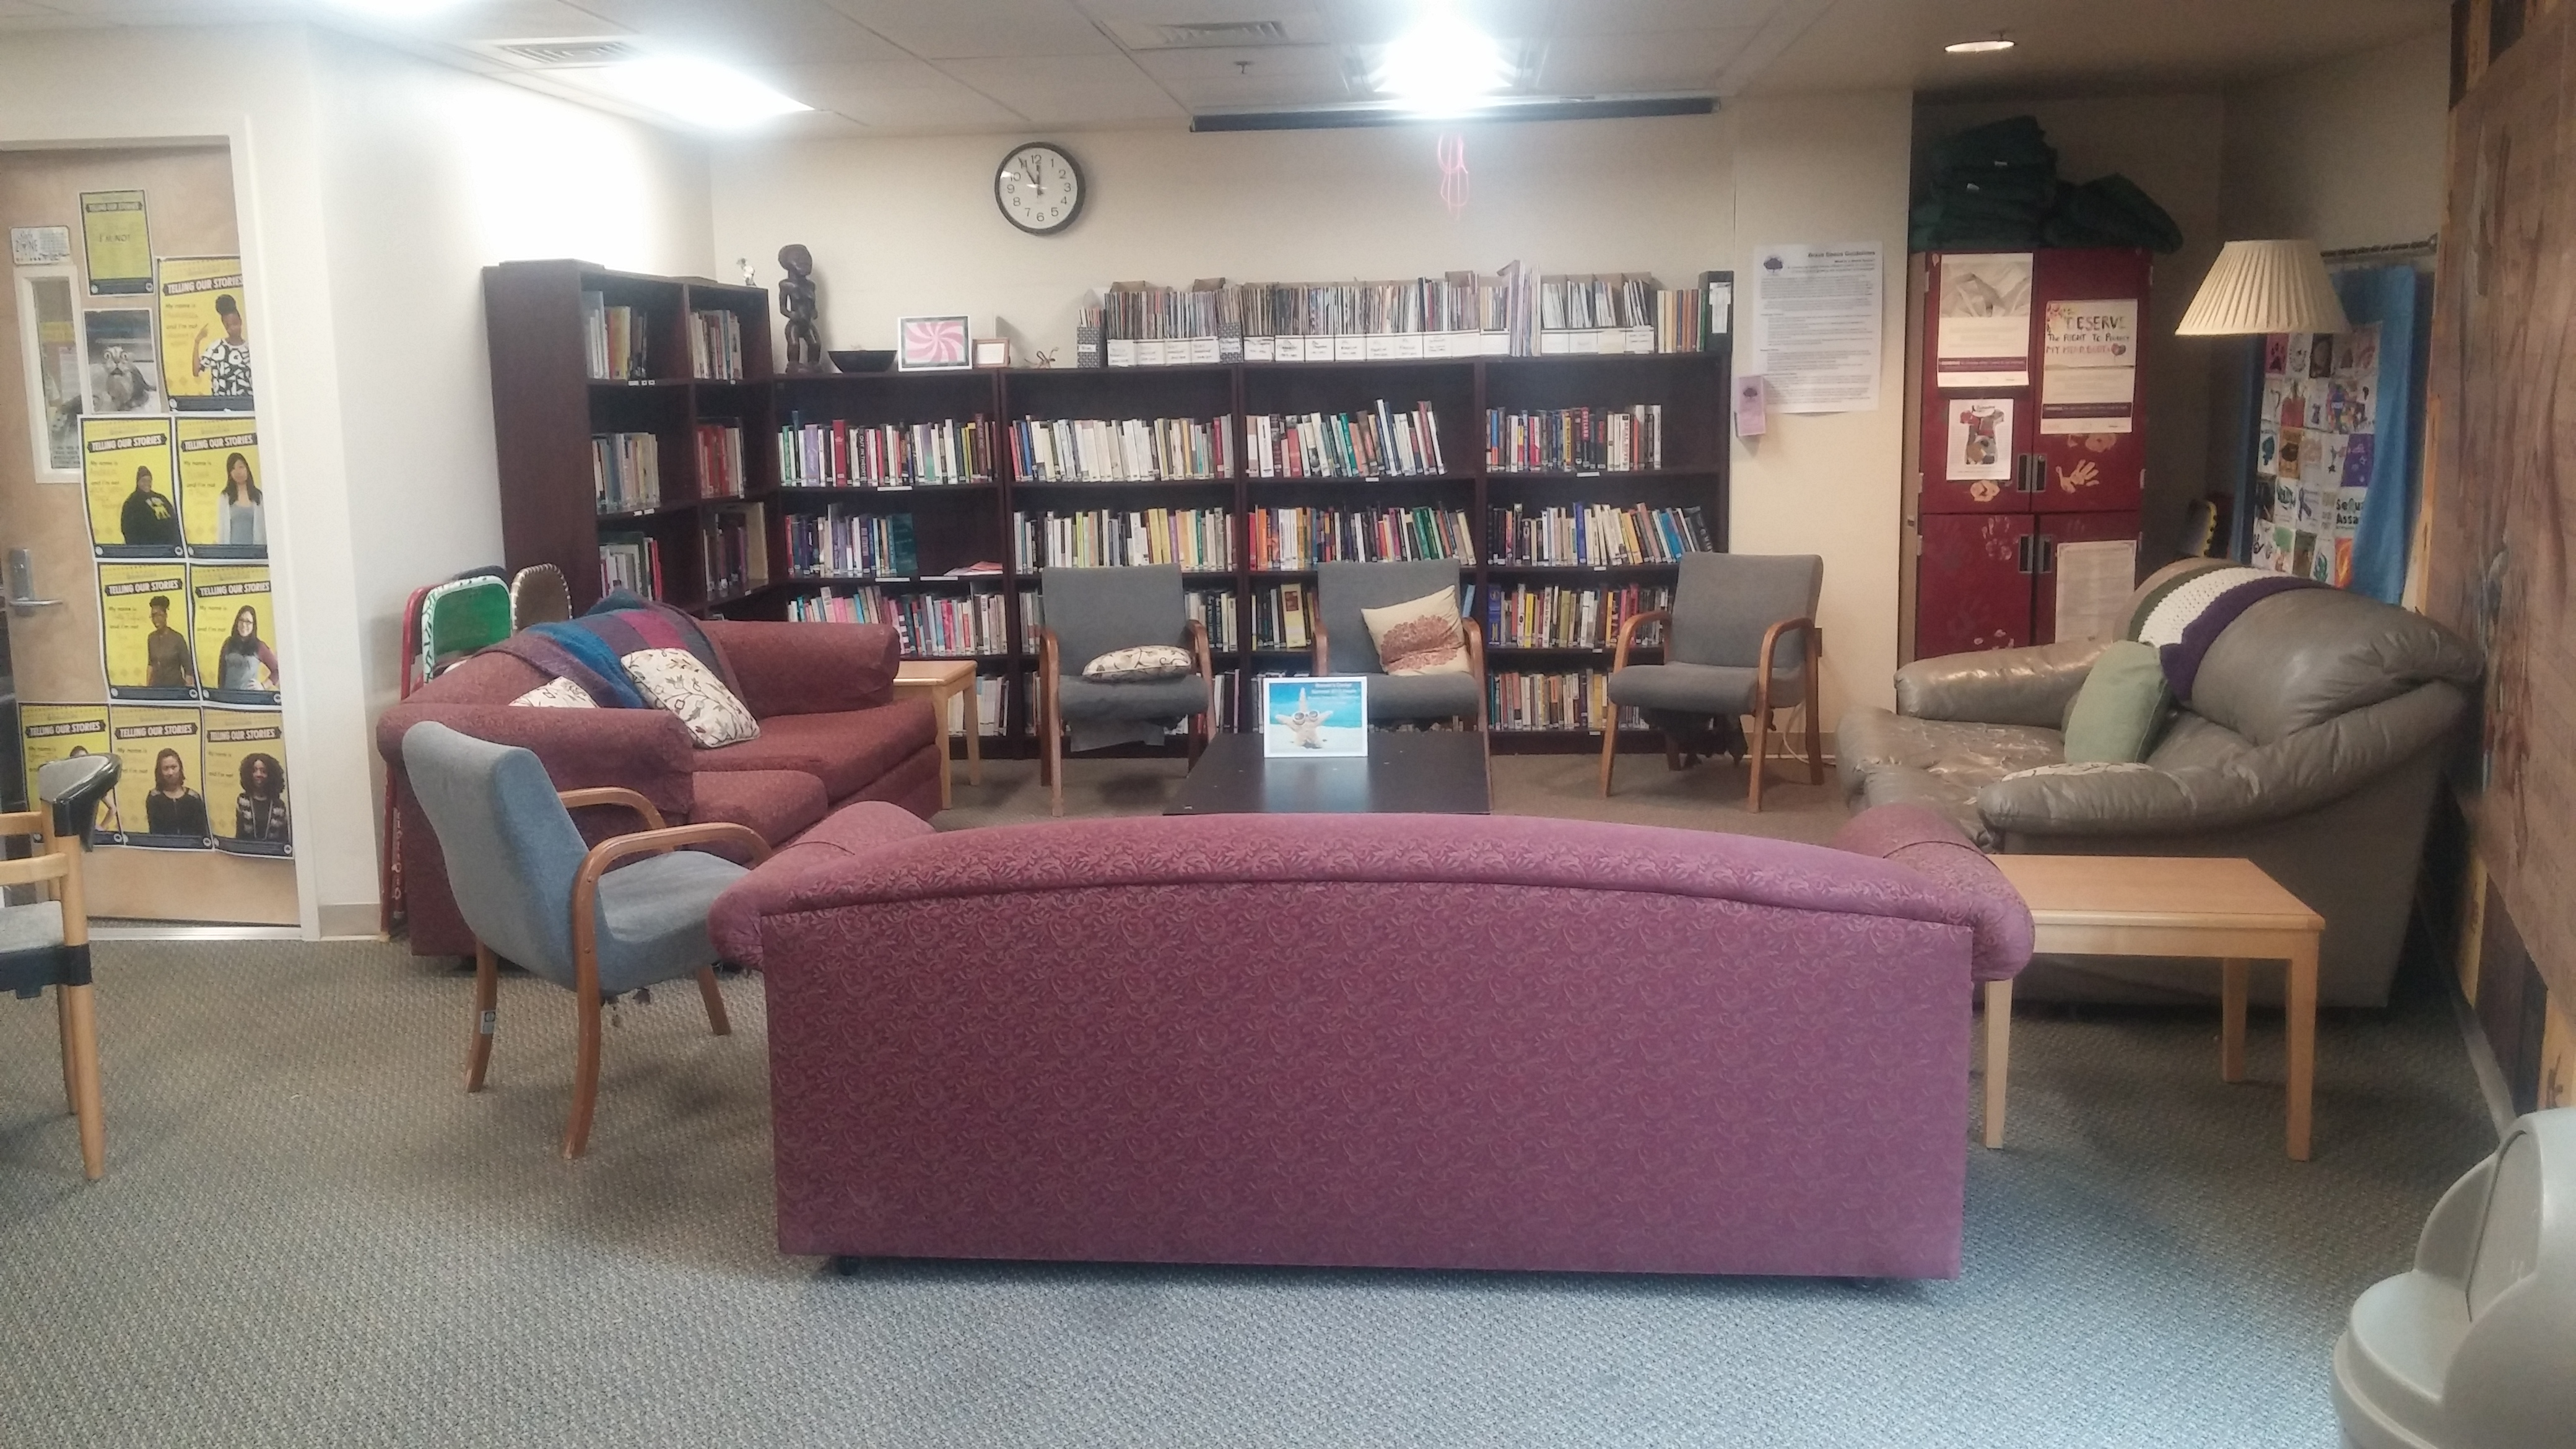 Books and magazines are available to borrow through our lending library. Stop by the front desk to check out any reading material.